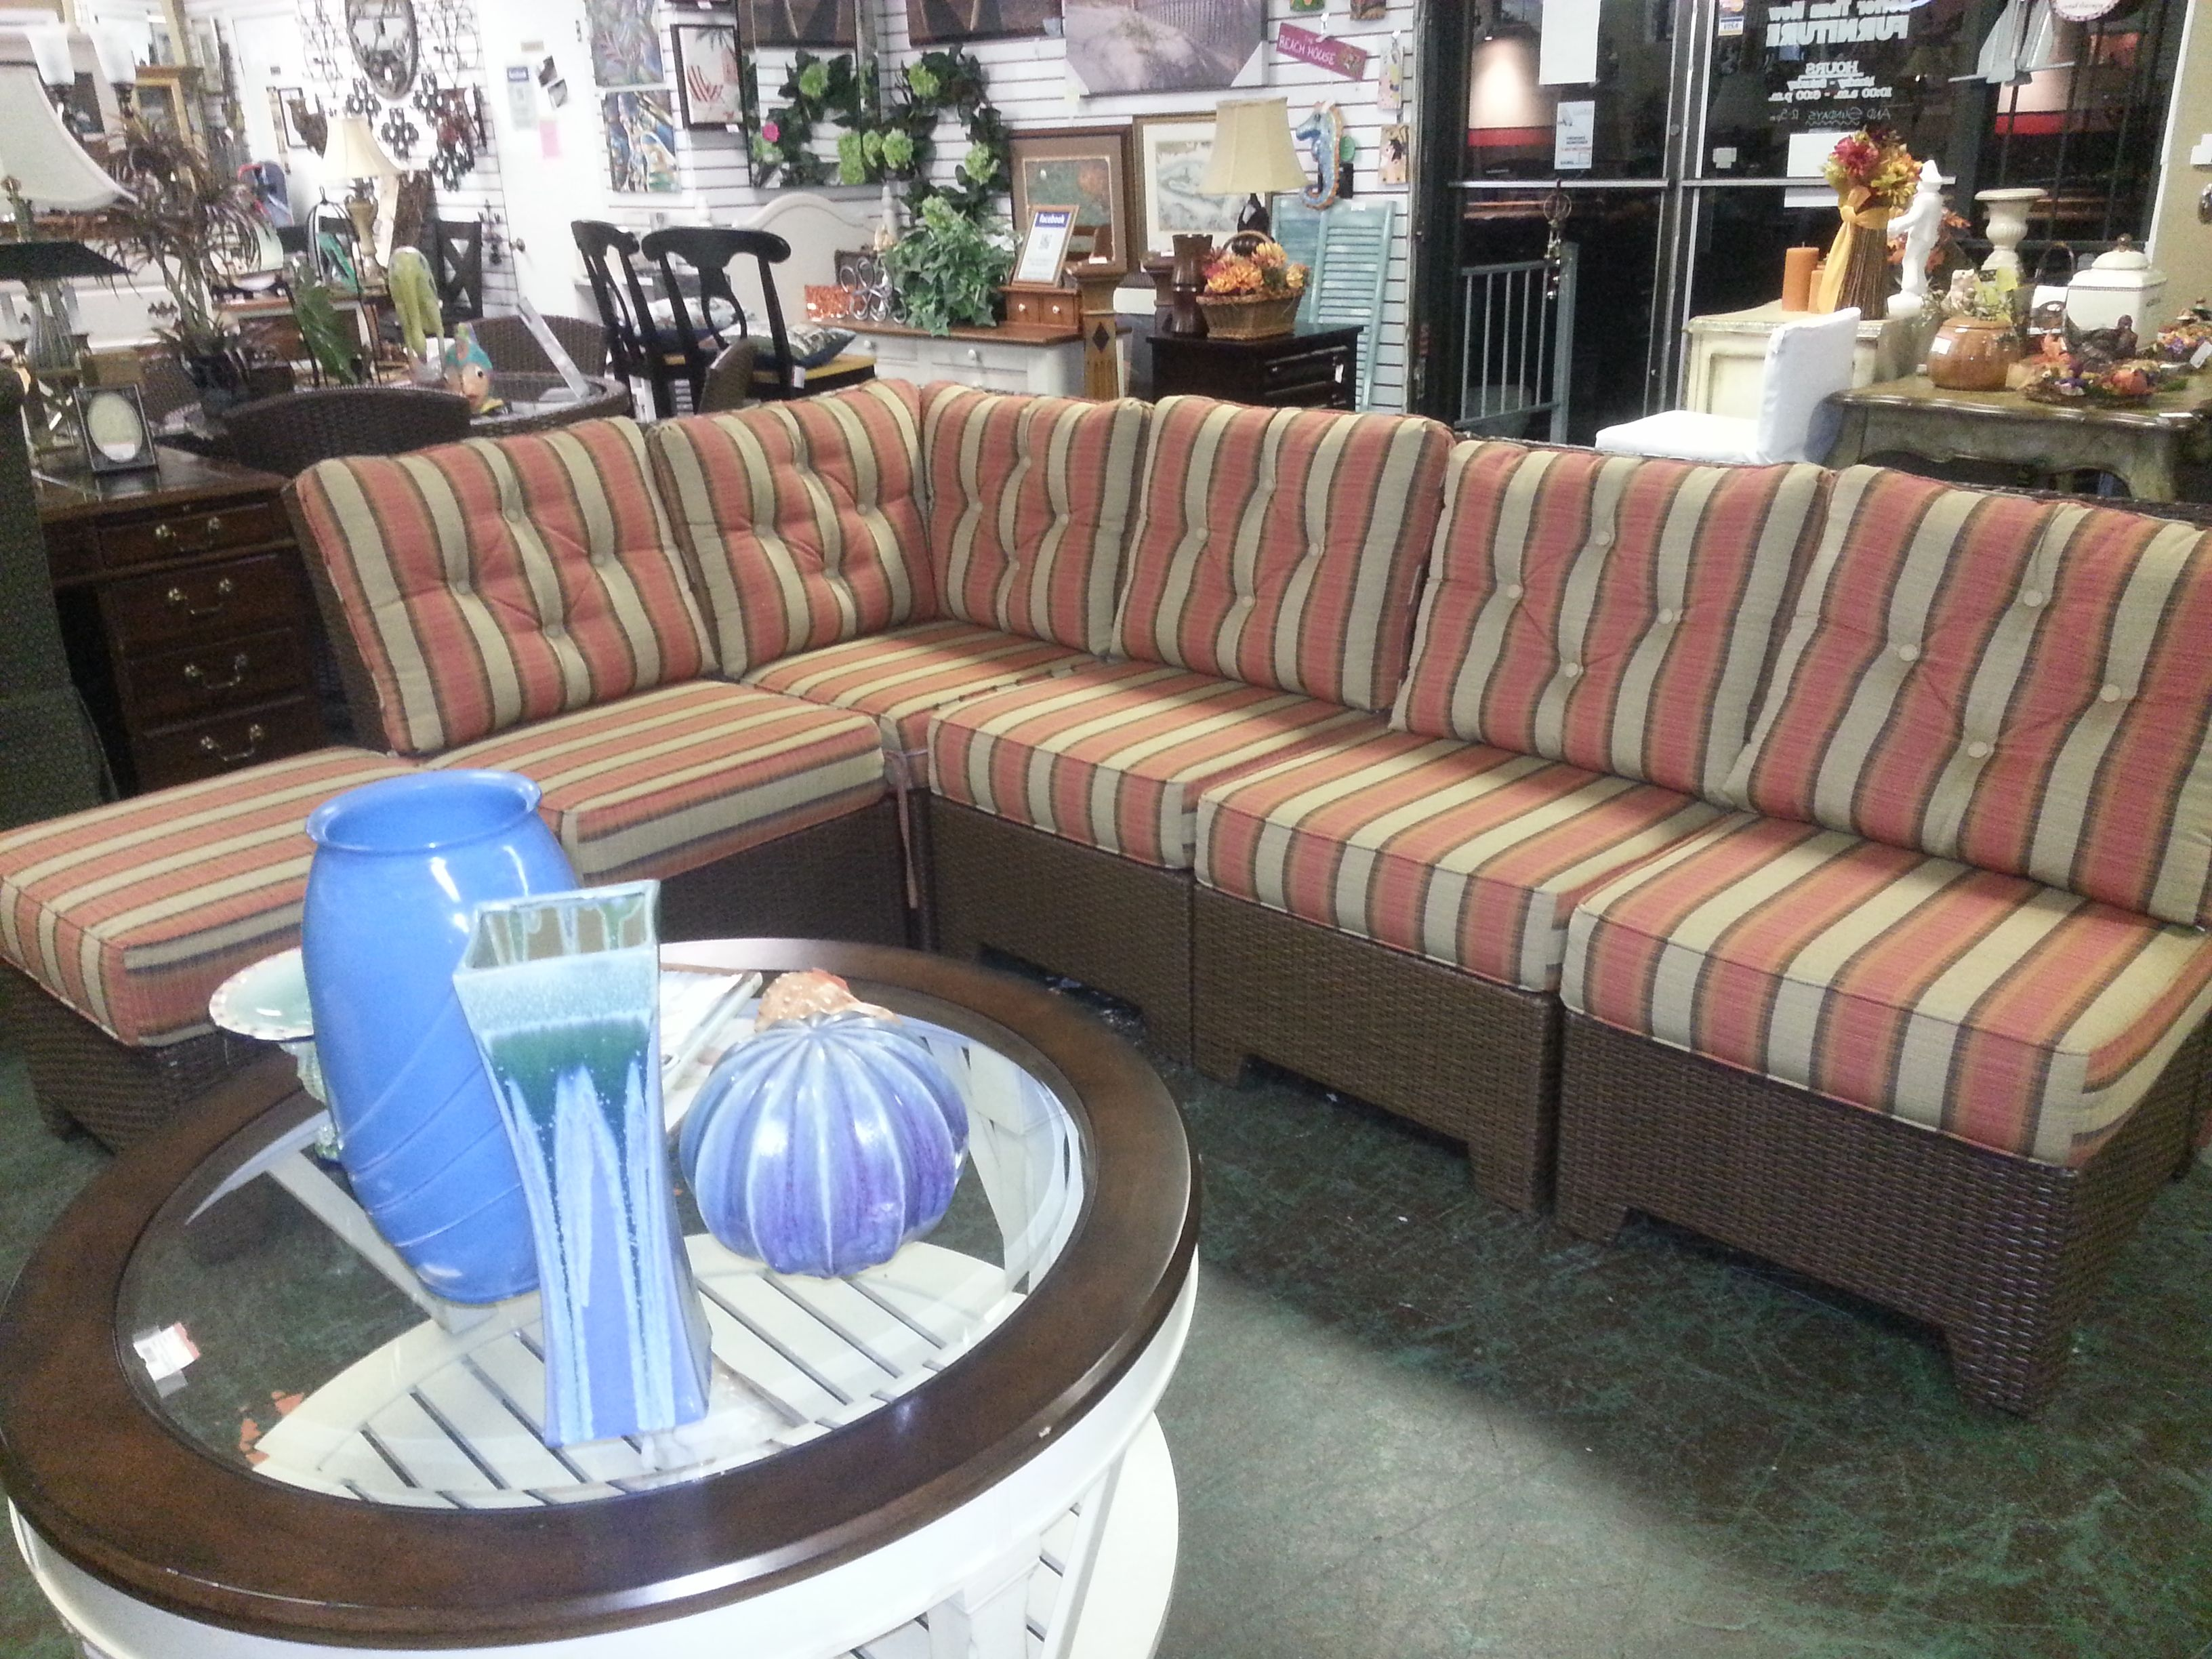 Captivating Everyone Wanted To Take This Patio Sectional Home! One Lucky Shopper Got It  :)